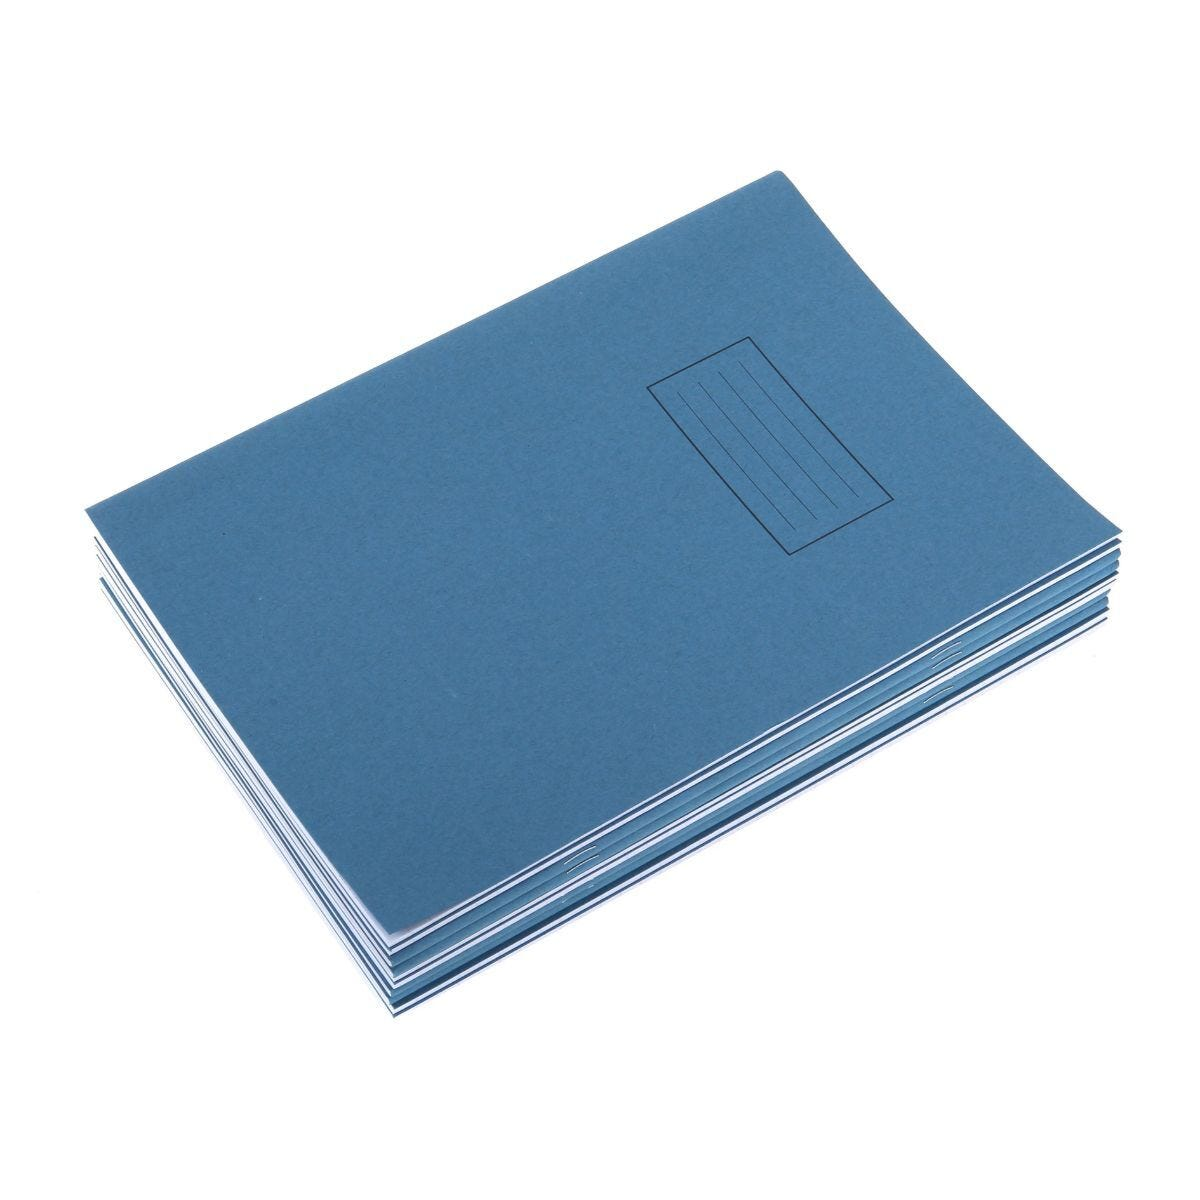 Silvine Exercise Book A4 Ruled 75gsm Pack of 10 Blue